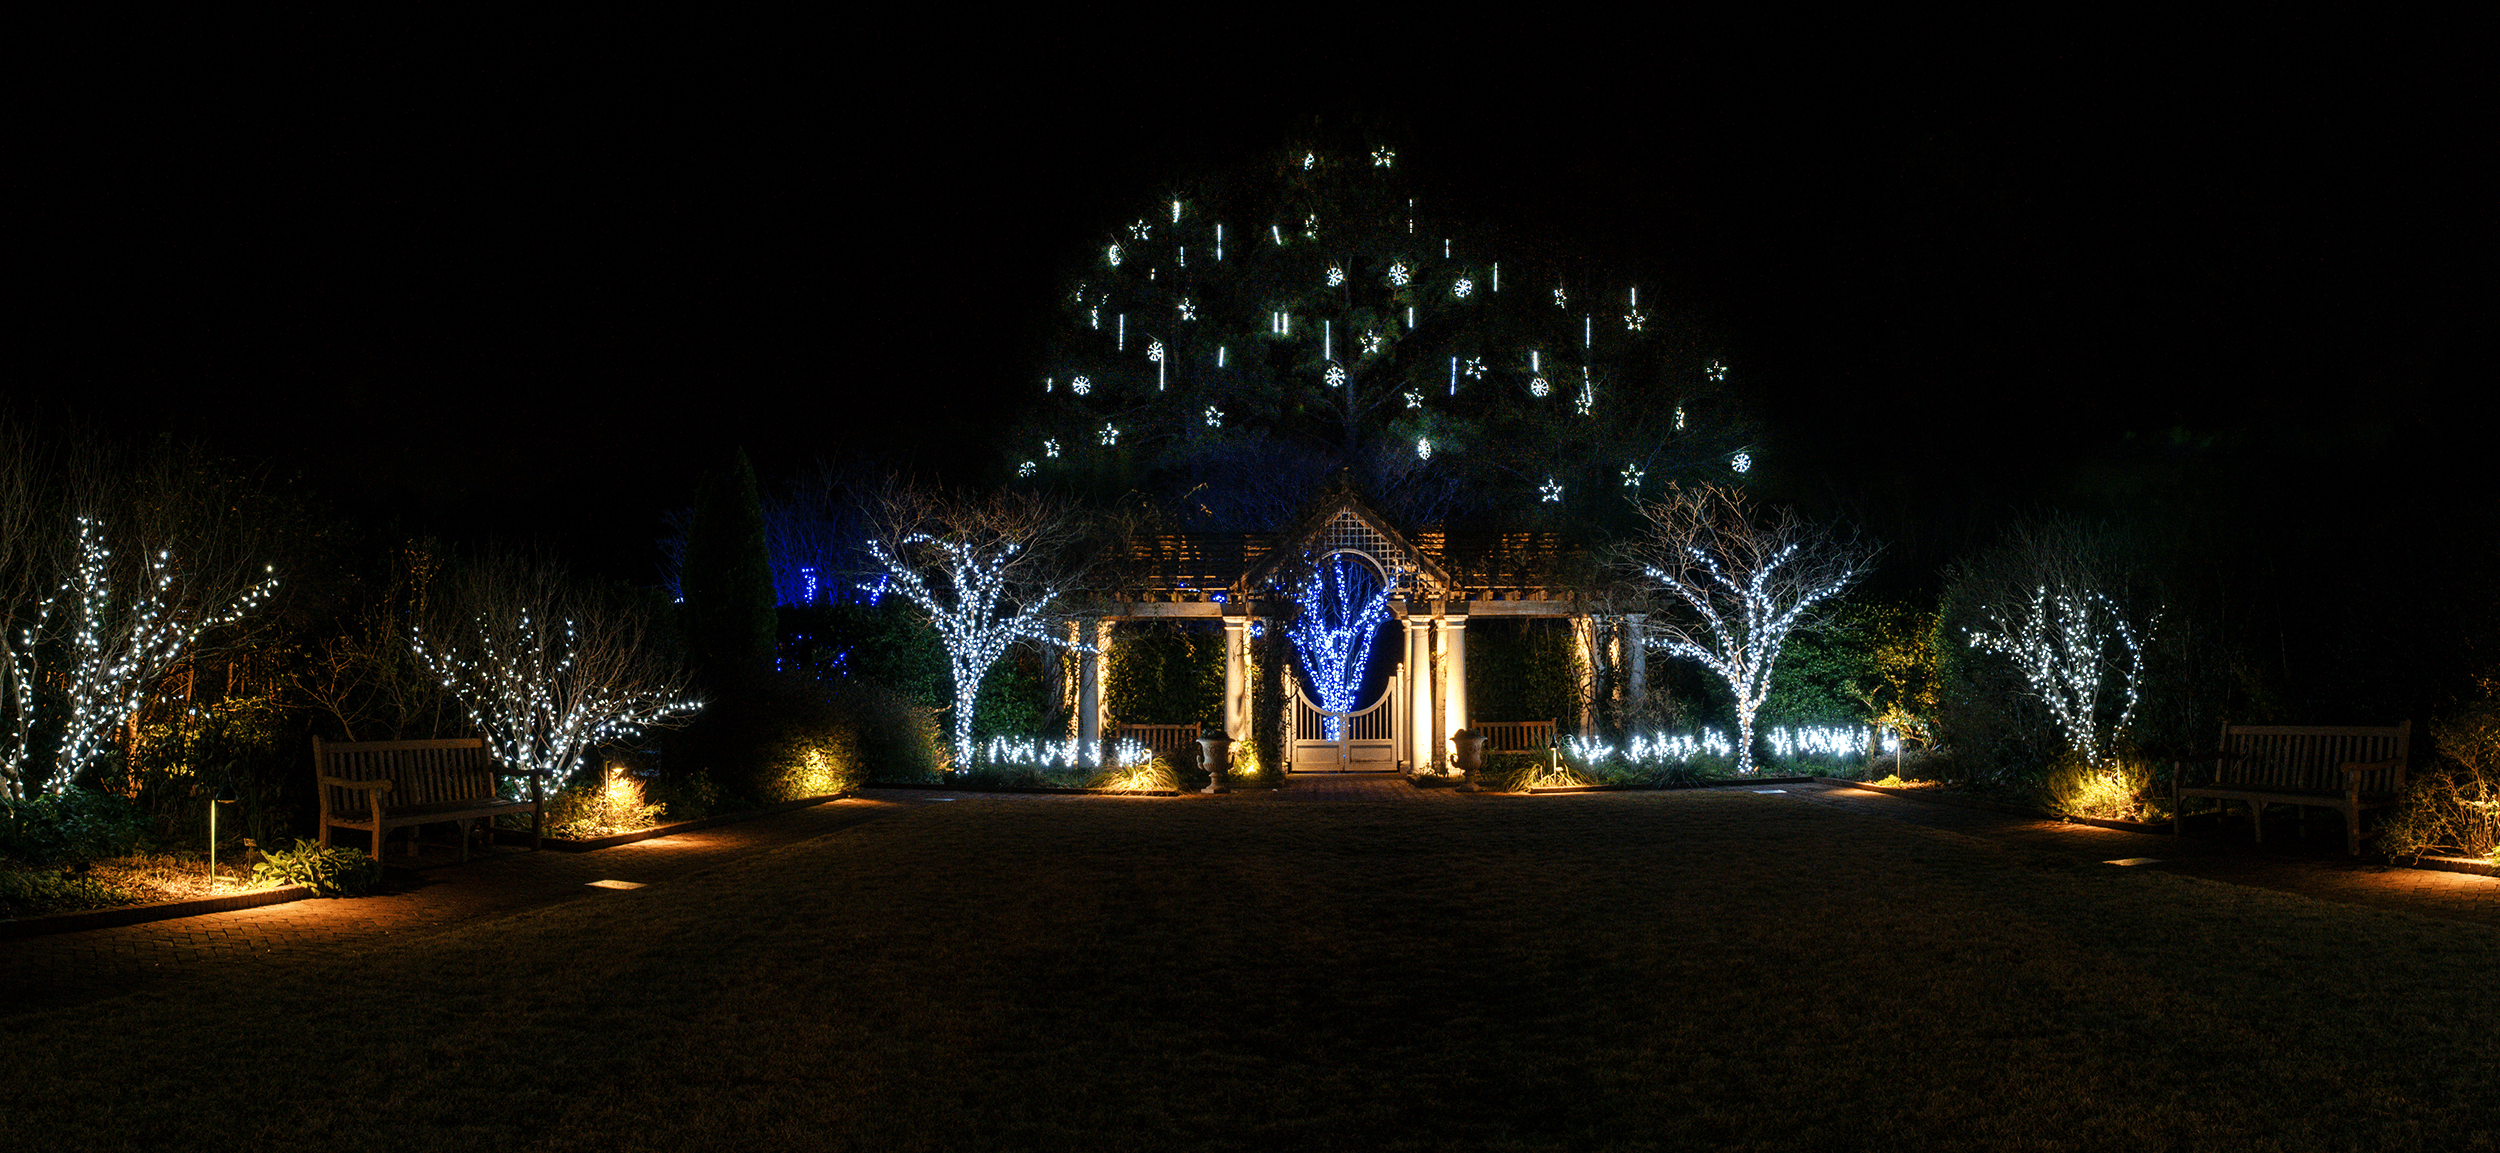 At the  White Garden  you can admire the snowflake ornaments in the tree. Aren't they lovely?